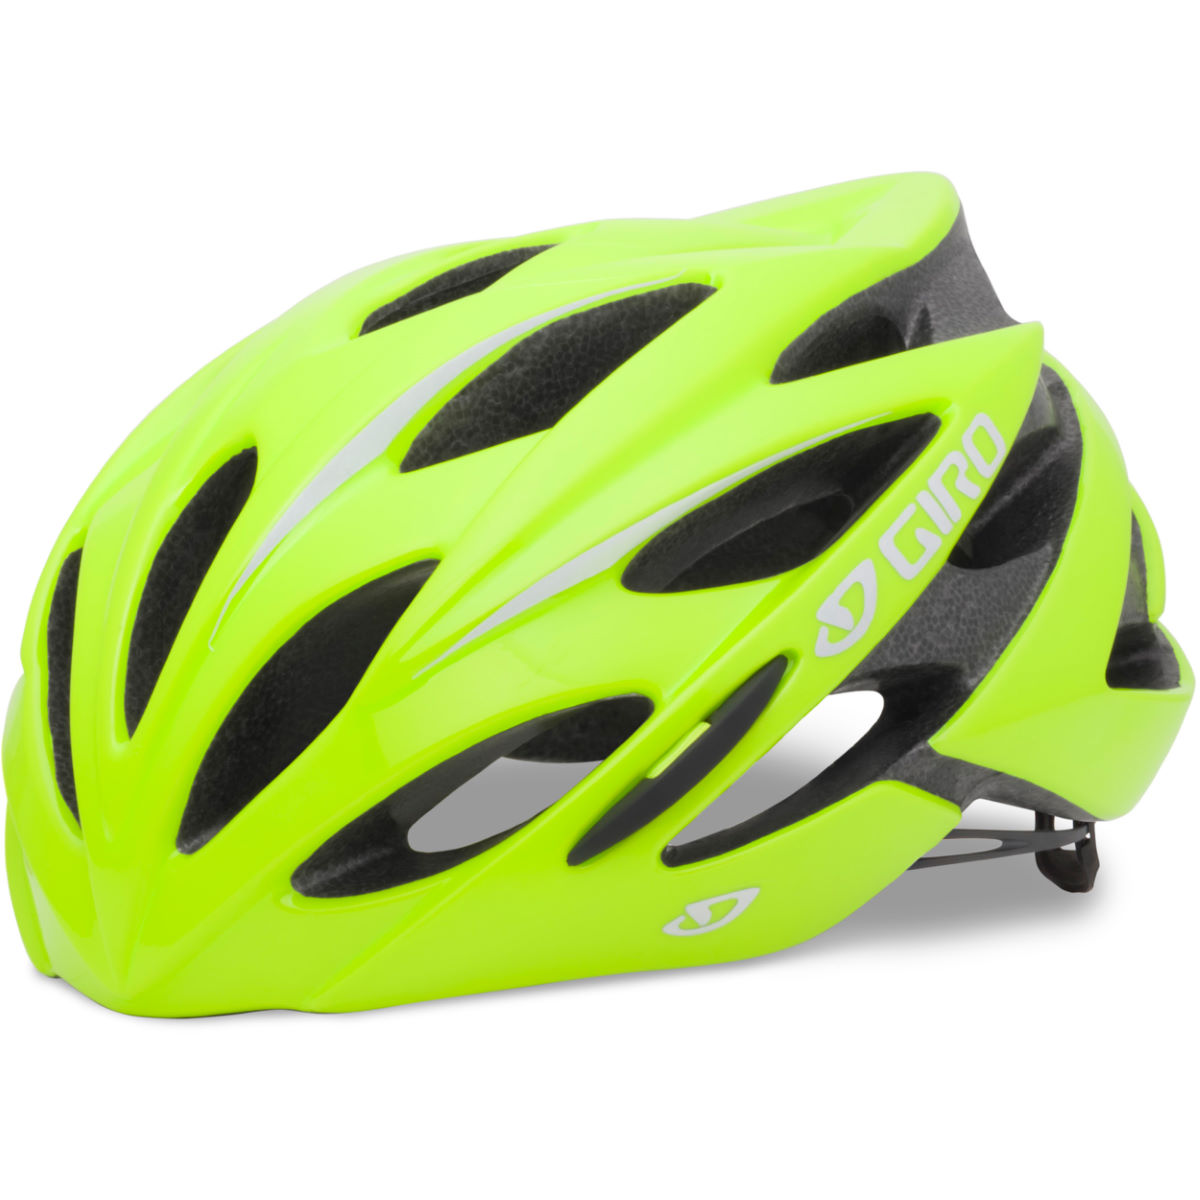 Giro savant road helmet road helmets highlight yellow gihsav9s5